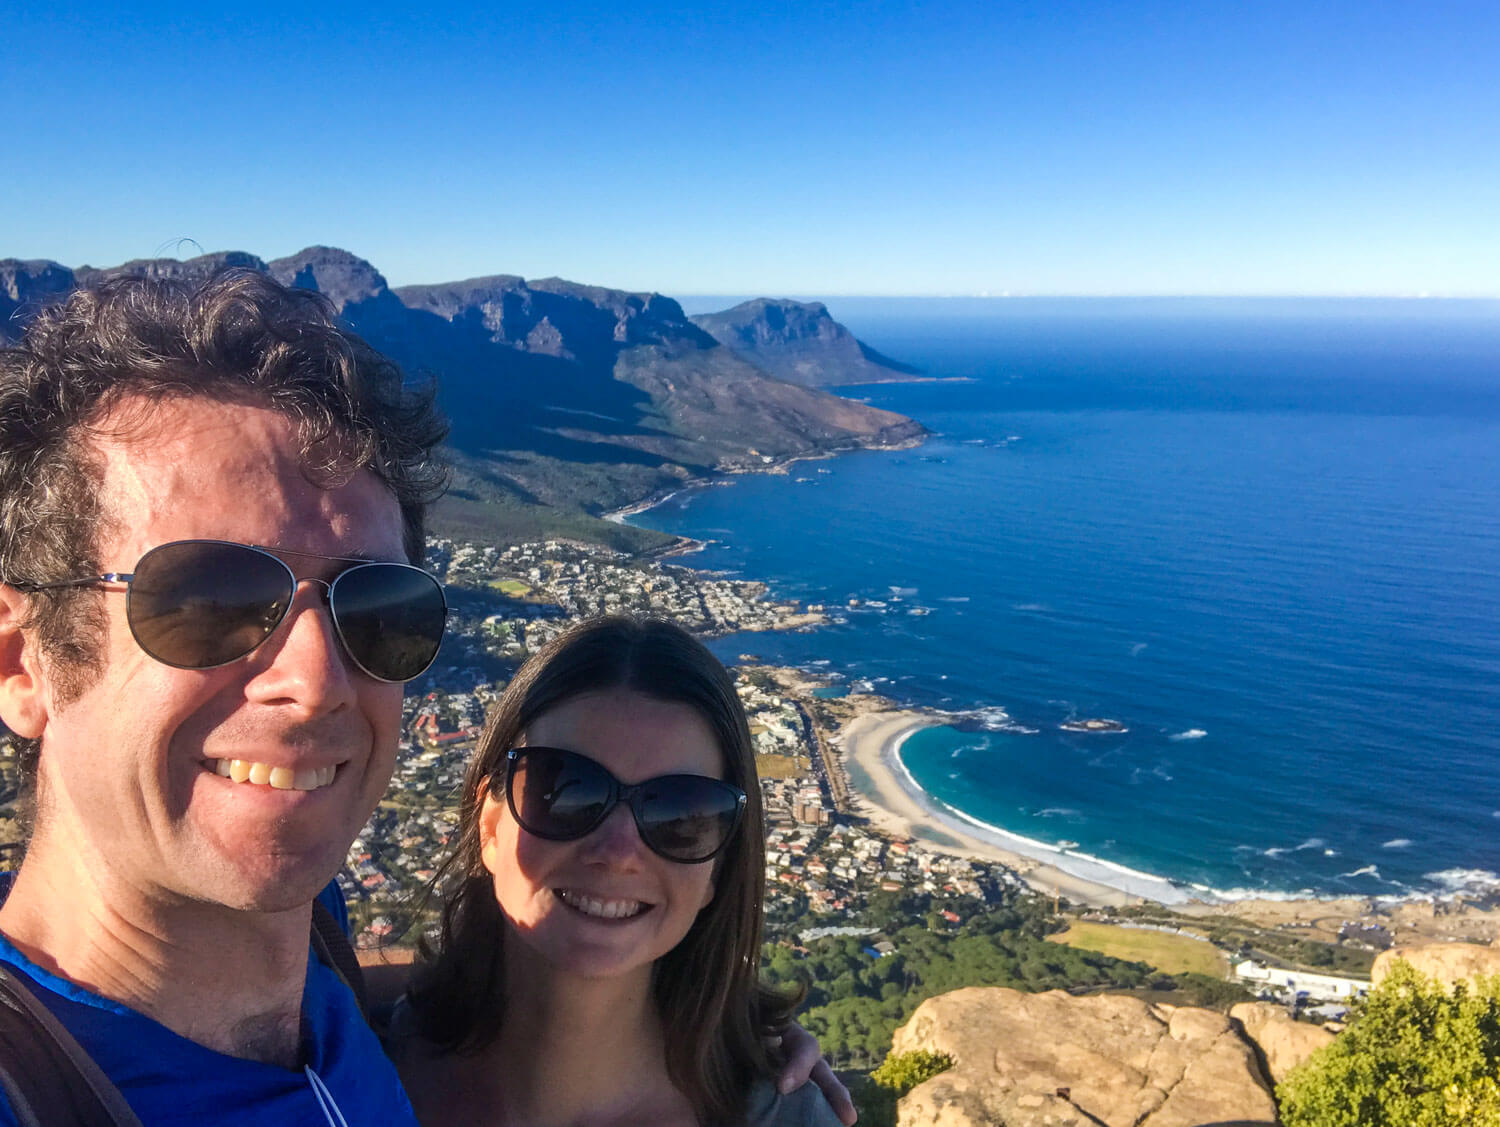 At Lions Head, Cape Town